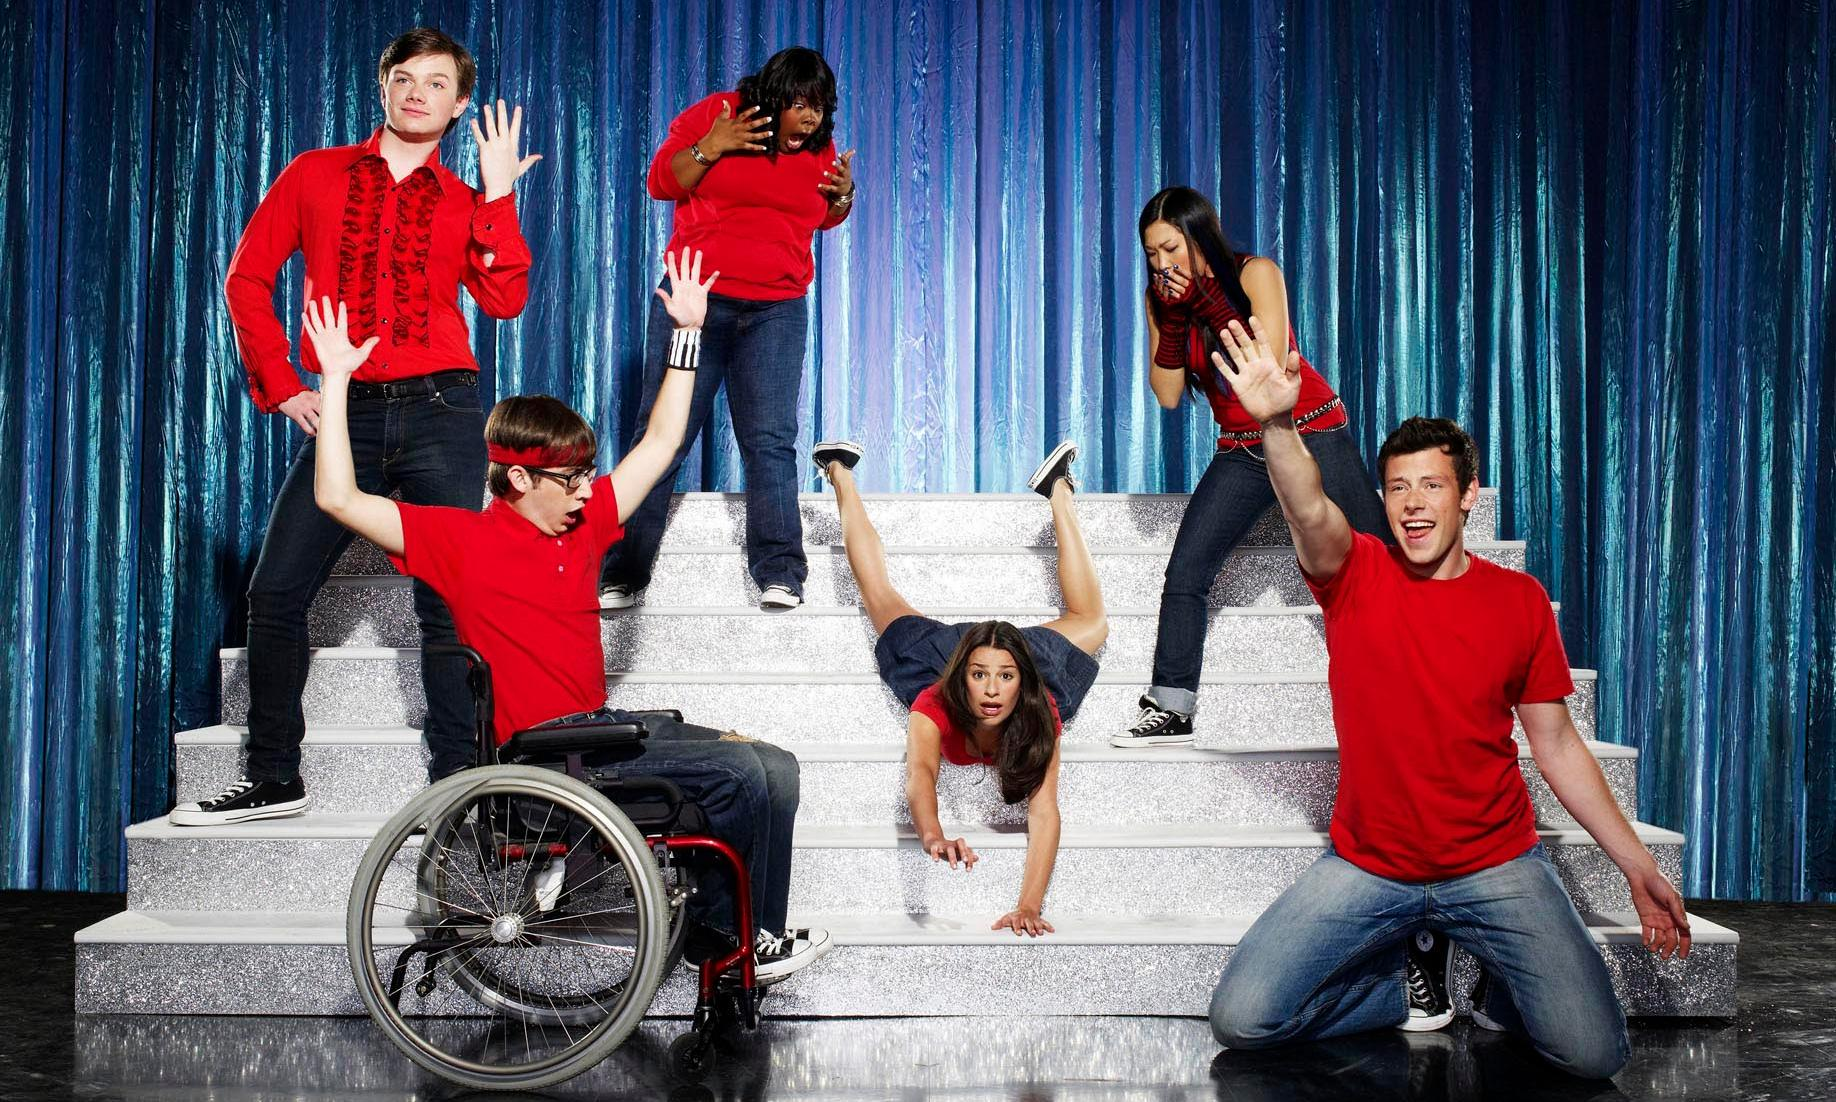 School's out: how Glee made fans stop believin'